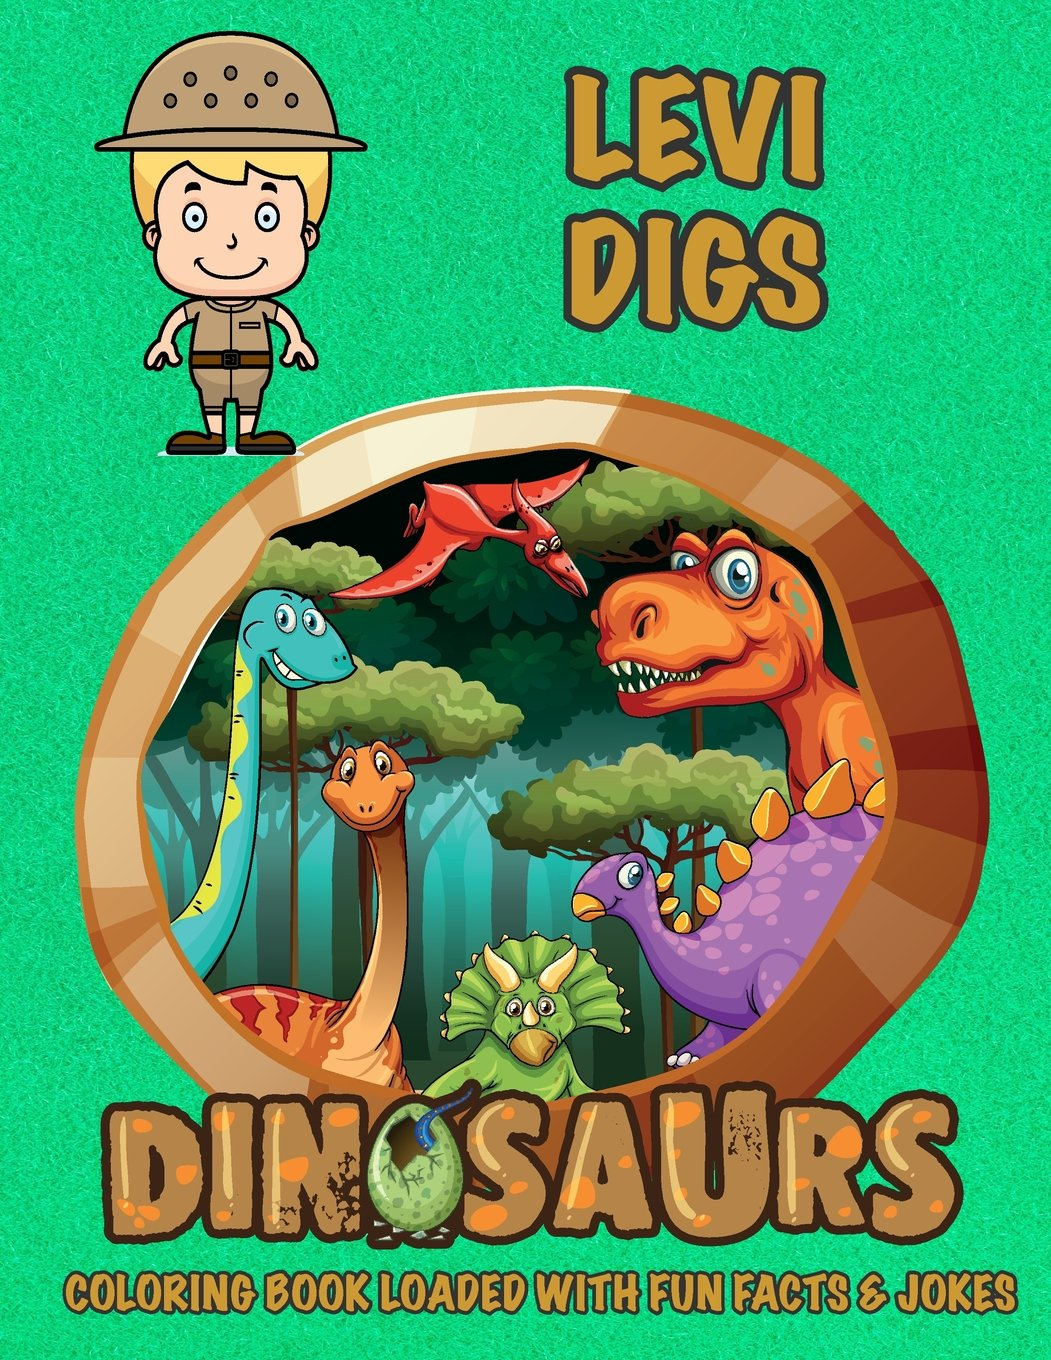 Levi Digs Dinosaurs Coloring Book Loaded With Fun Facts & Jokes (Personalized Books for Children) pdf epub